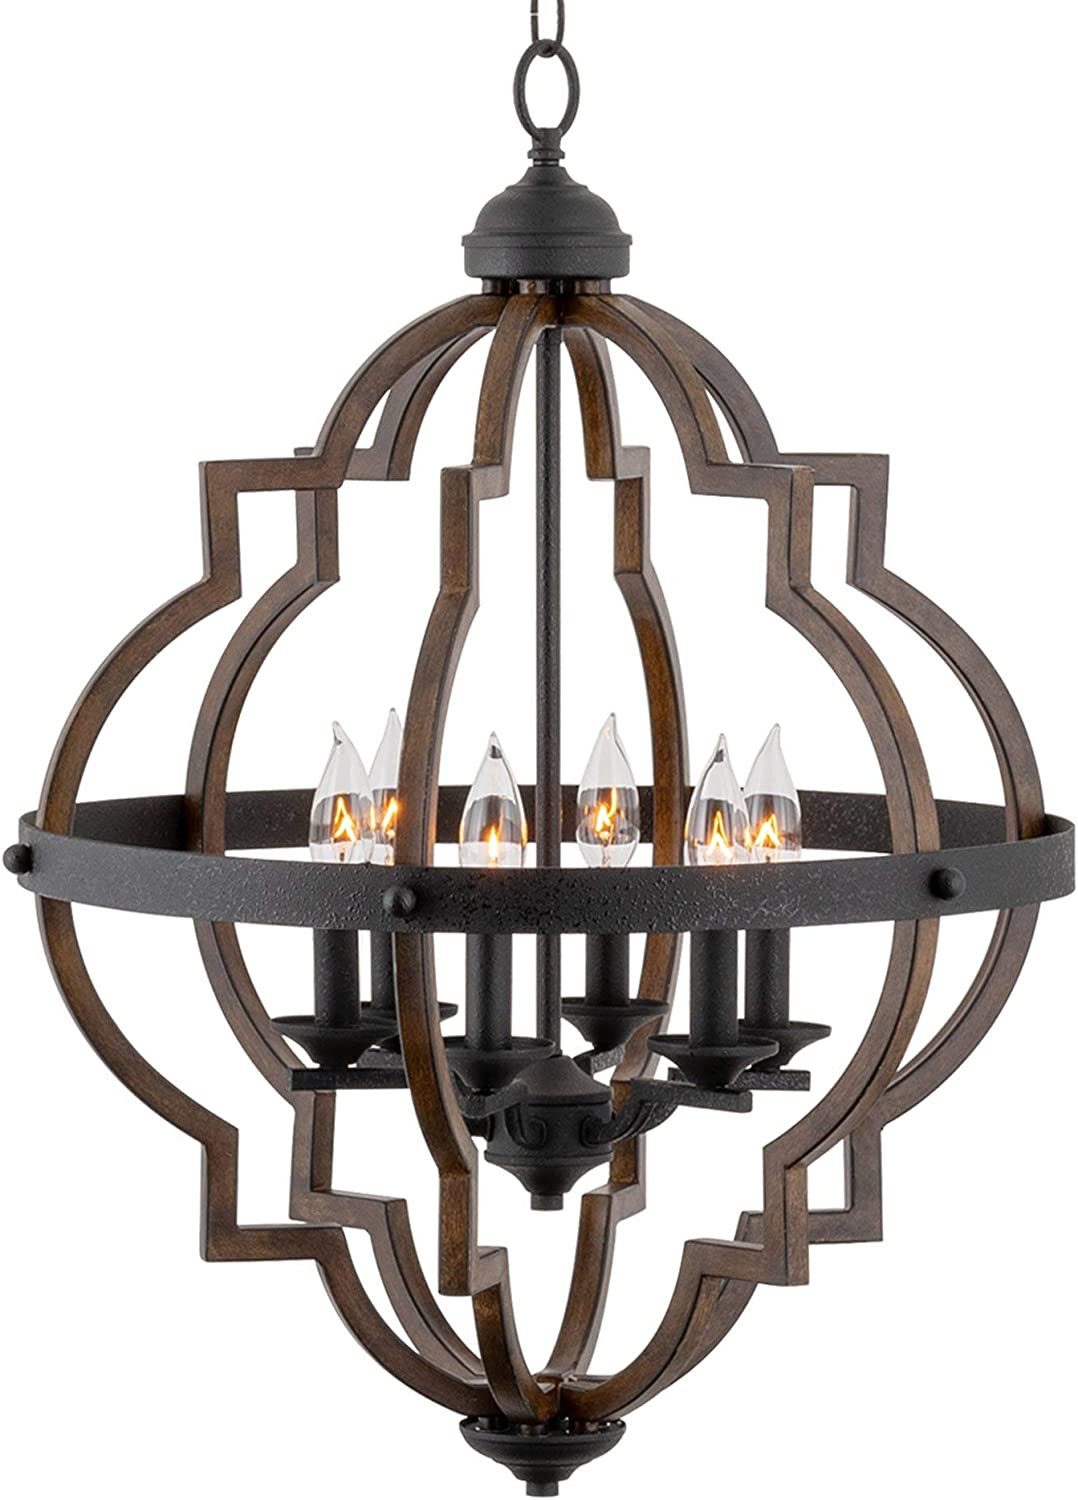 """Kira Home Capistrano 28"""" 6-Light Rustic Farmhouse Chandelier, Wood Style Metal Frame, Textured Black Accents + Walnut Style Finish"""